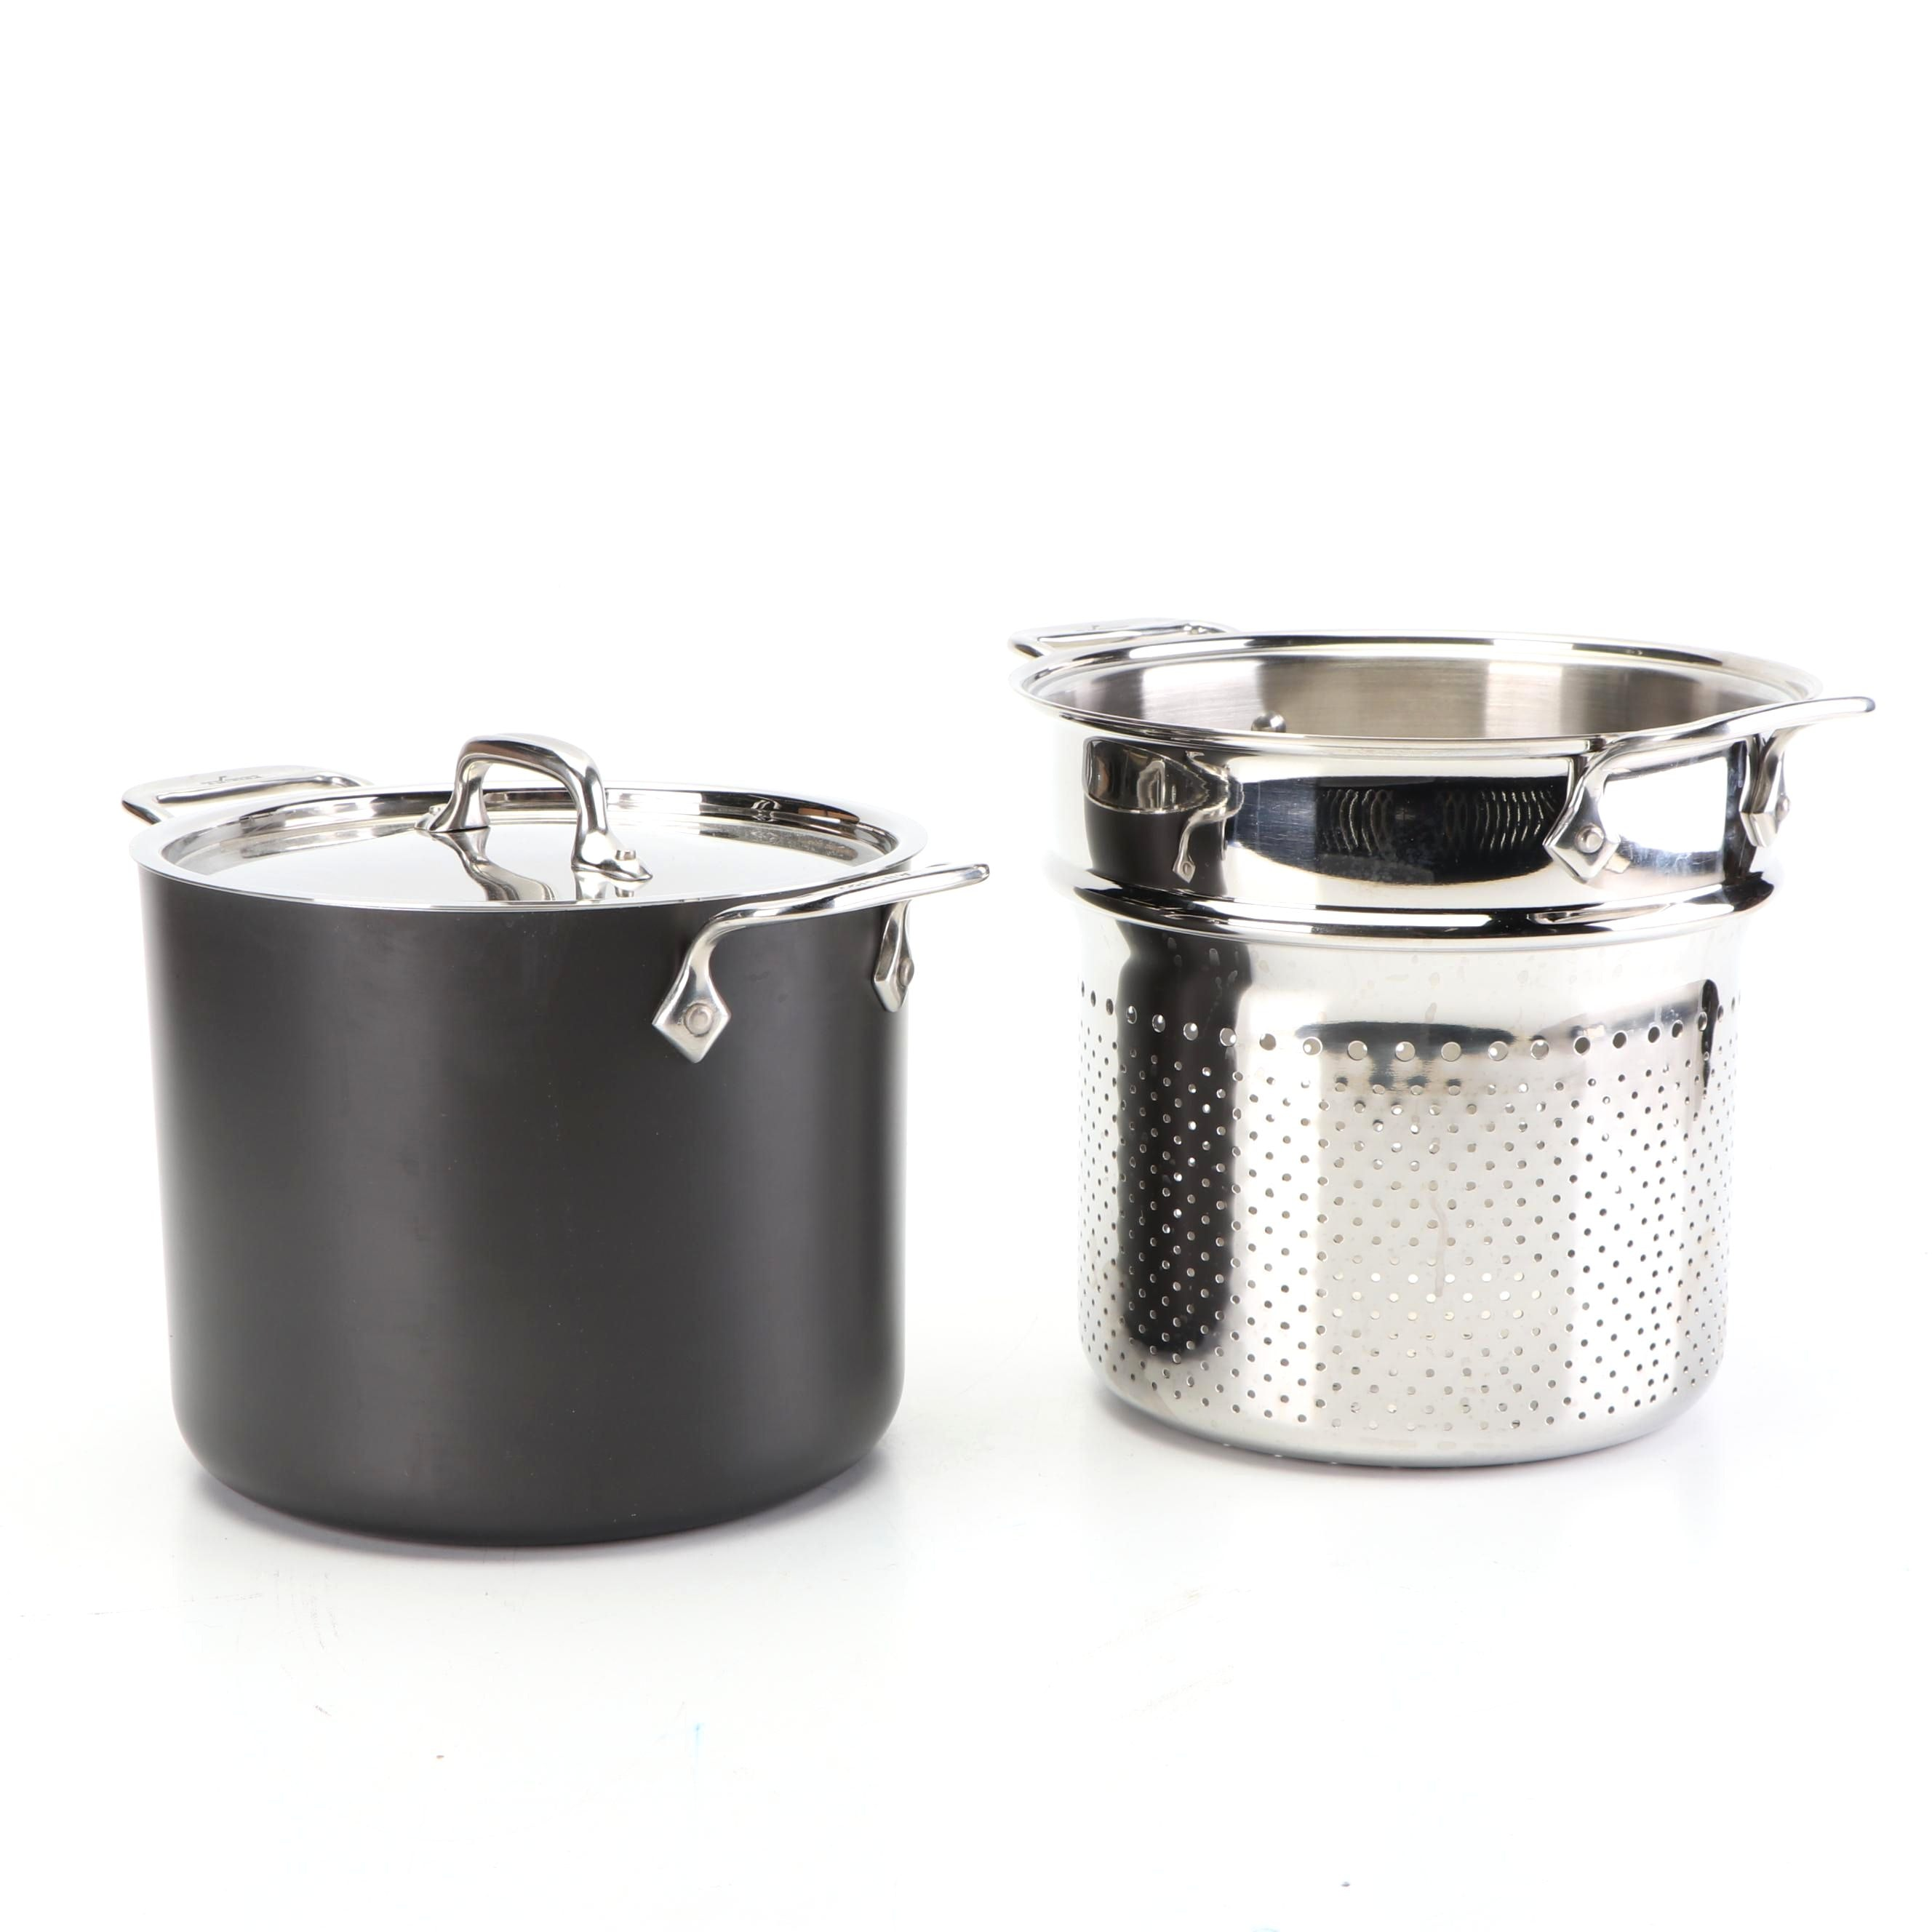 All-Clad Ltd Stock Pot with Strainer Basket